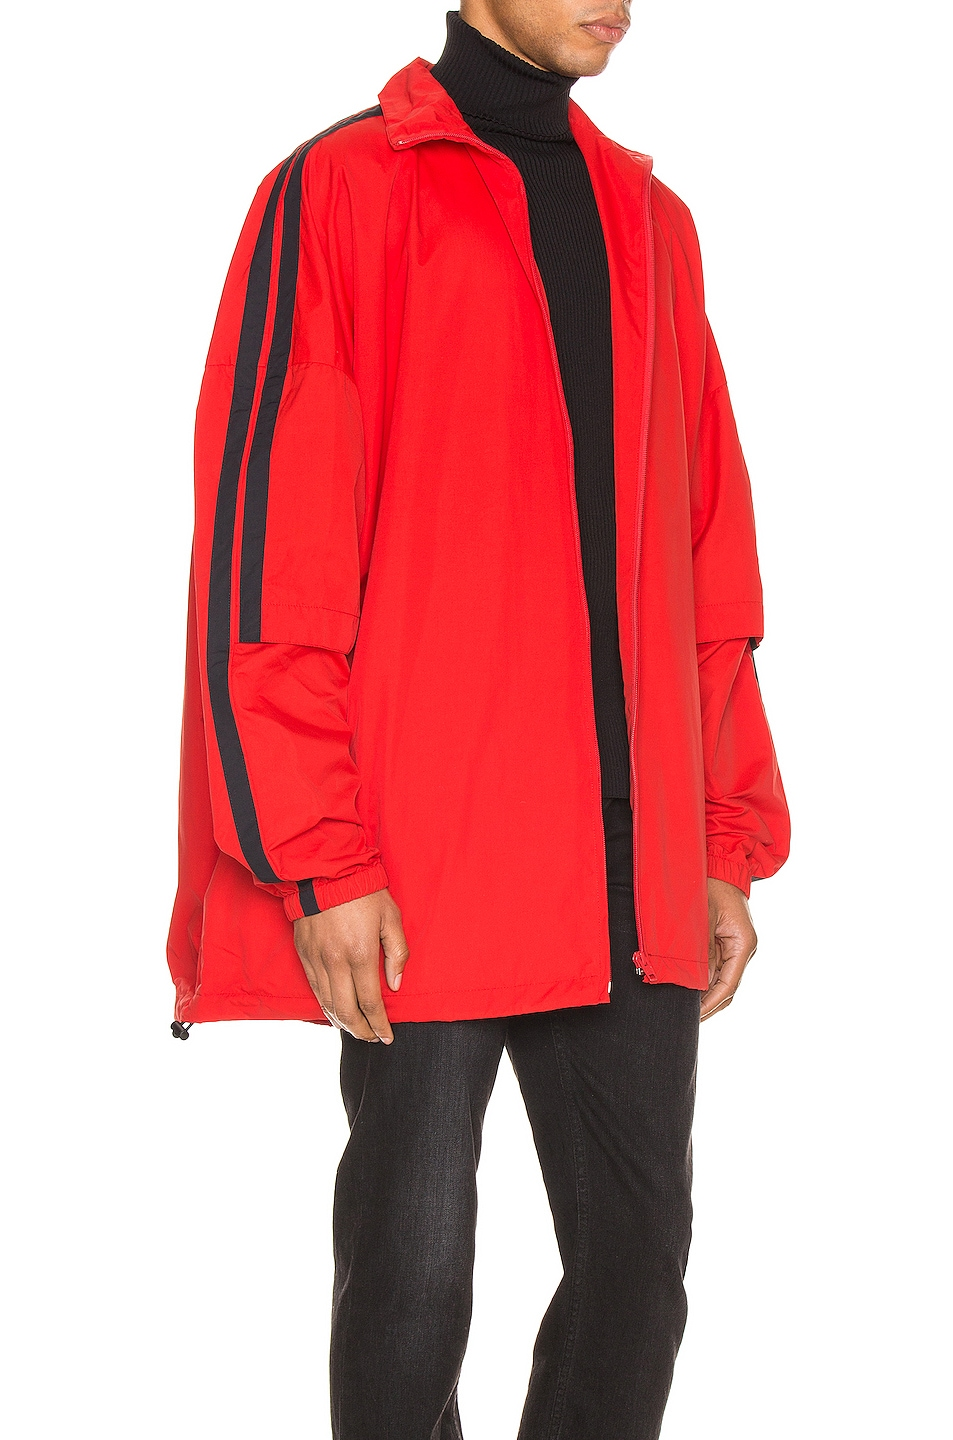 Image 4 of Balenciaga Double Sleeve Zip Up in Masai Red